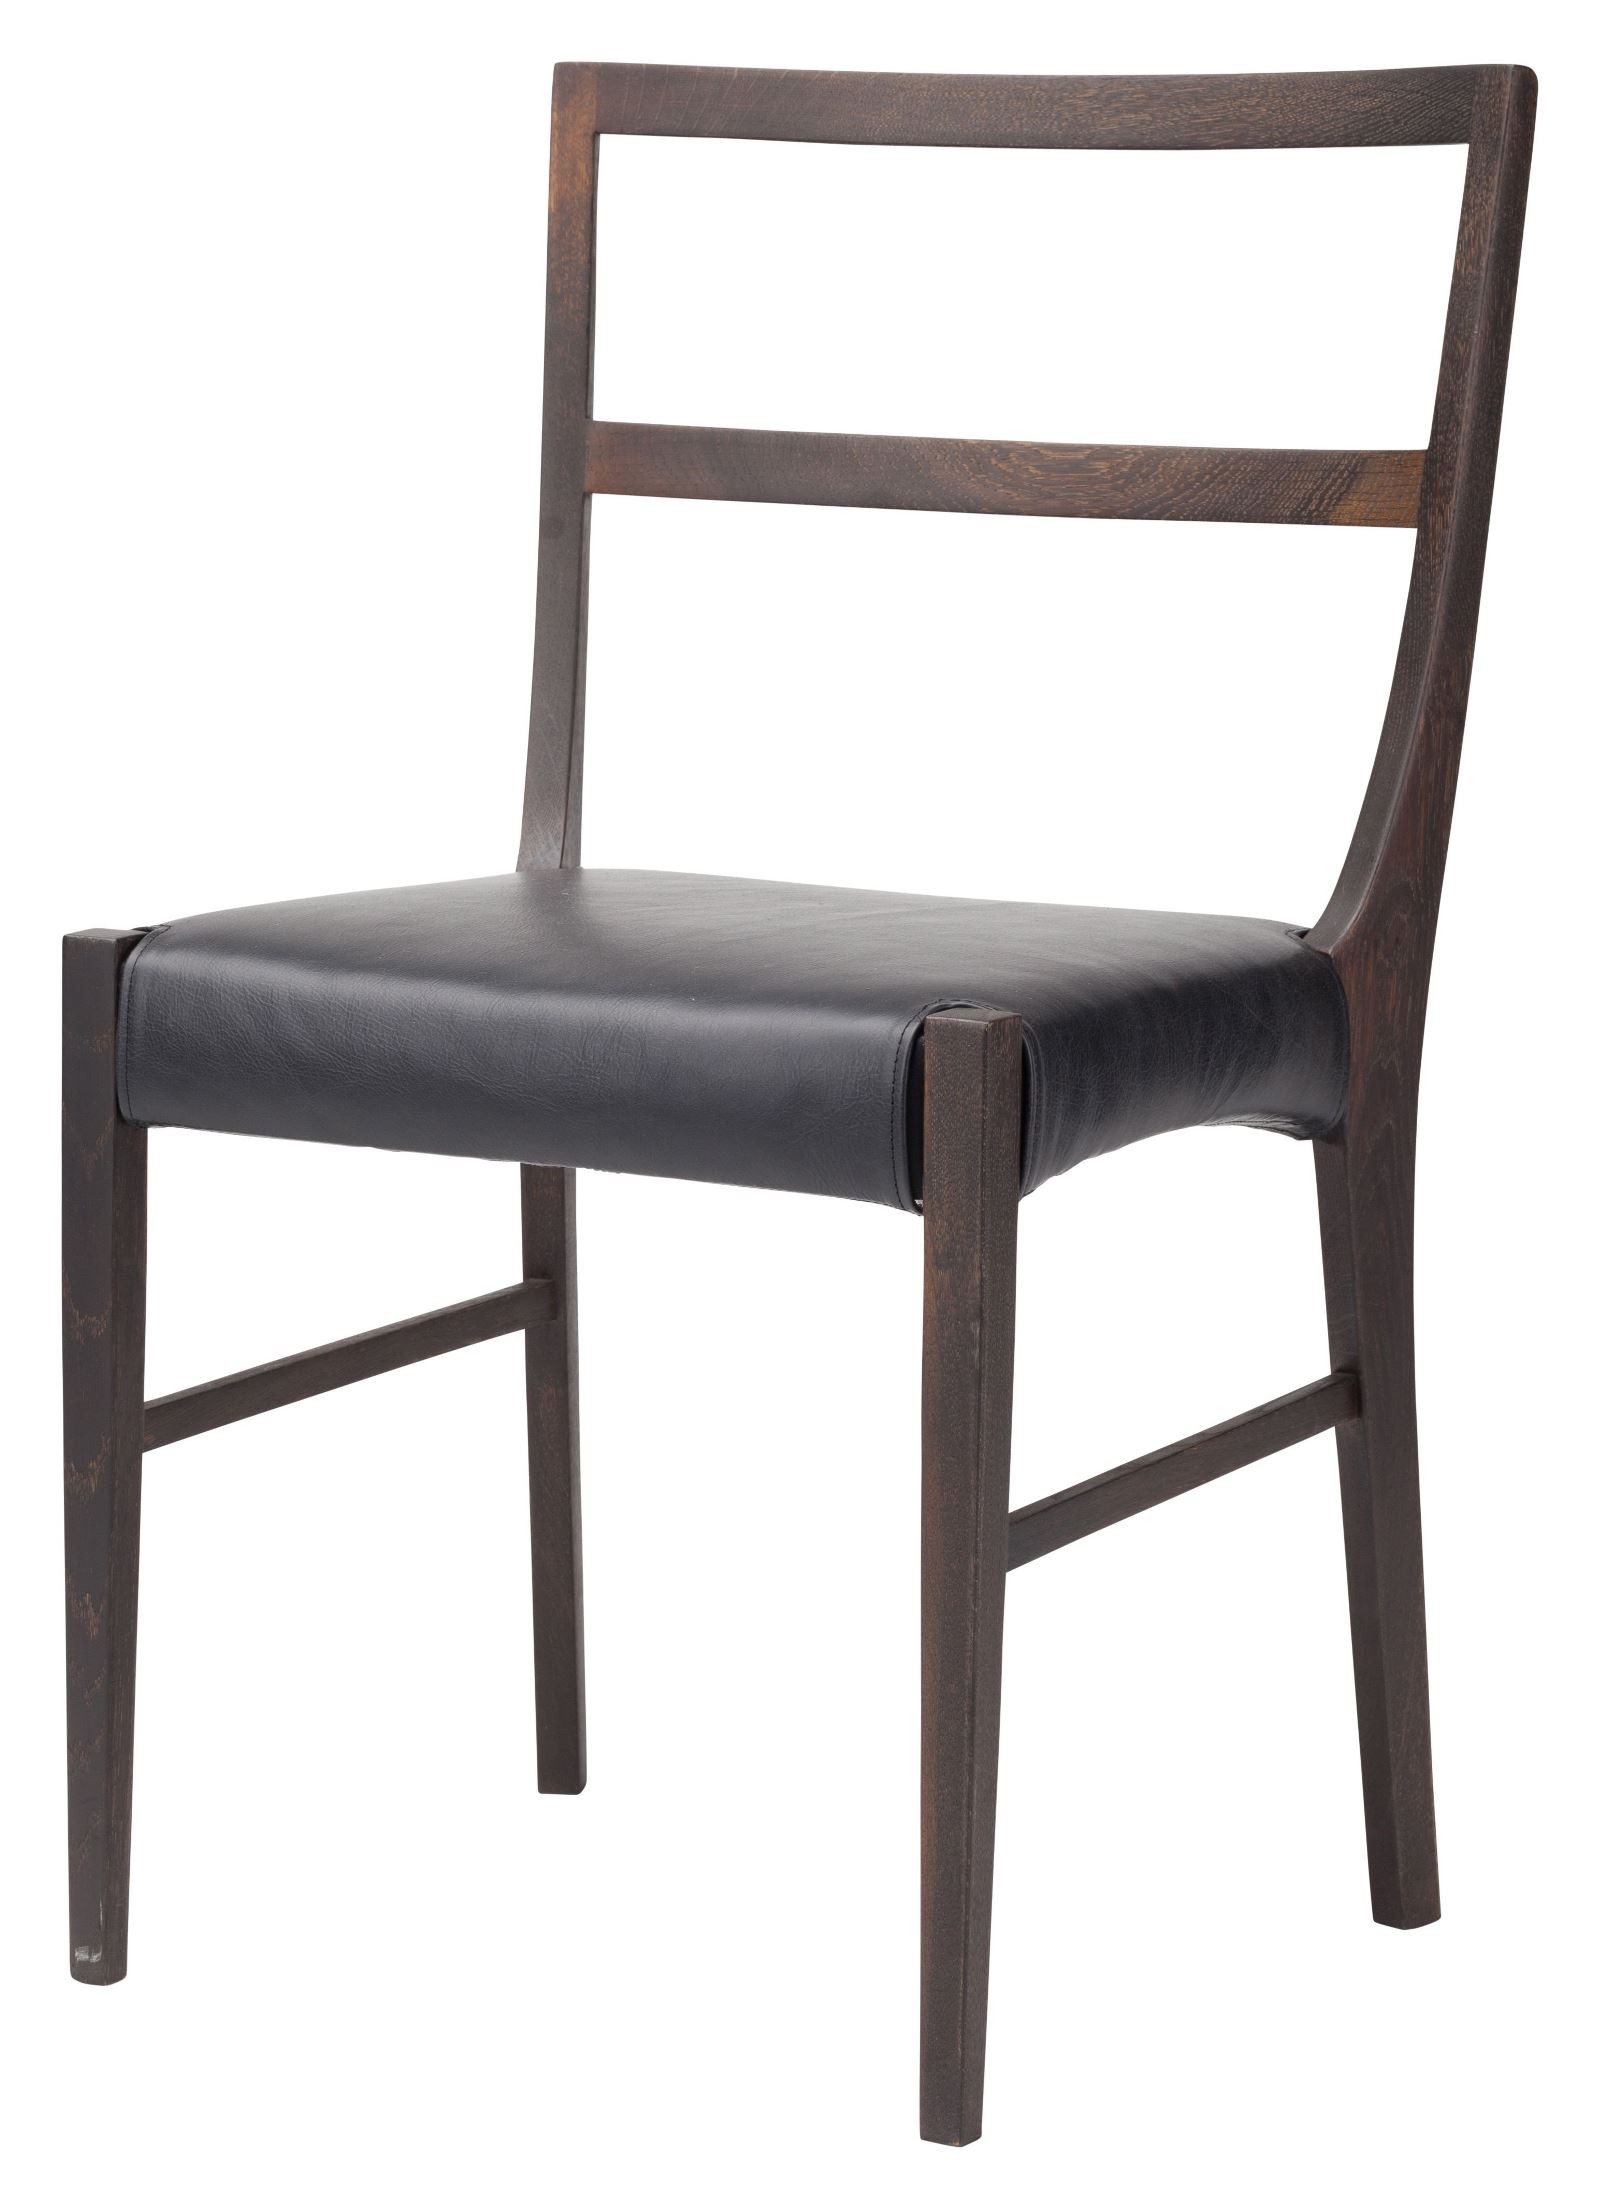 Hanna black leather dining chair hgsr564 nuevo for Black leather dining chairs